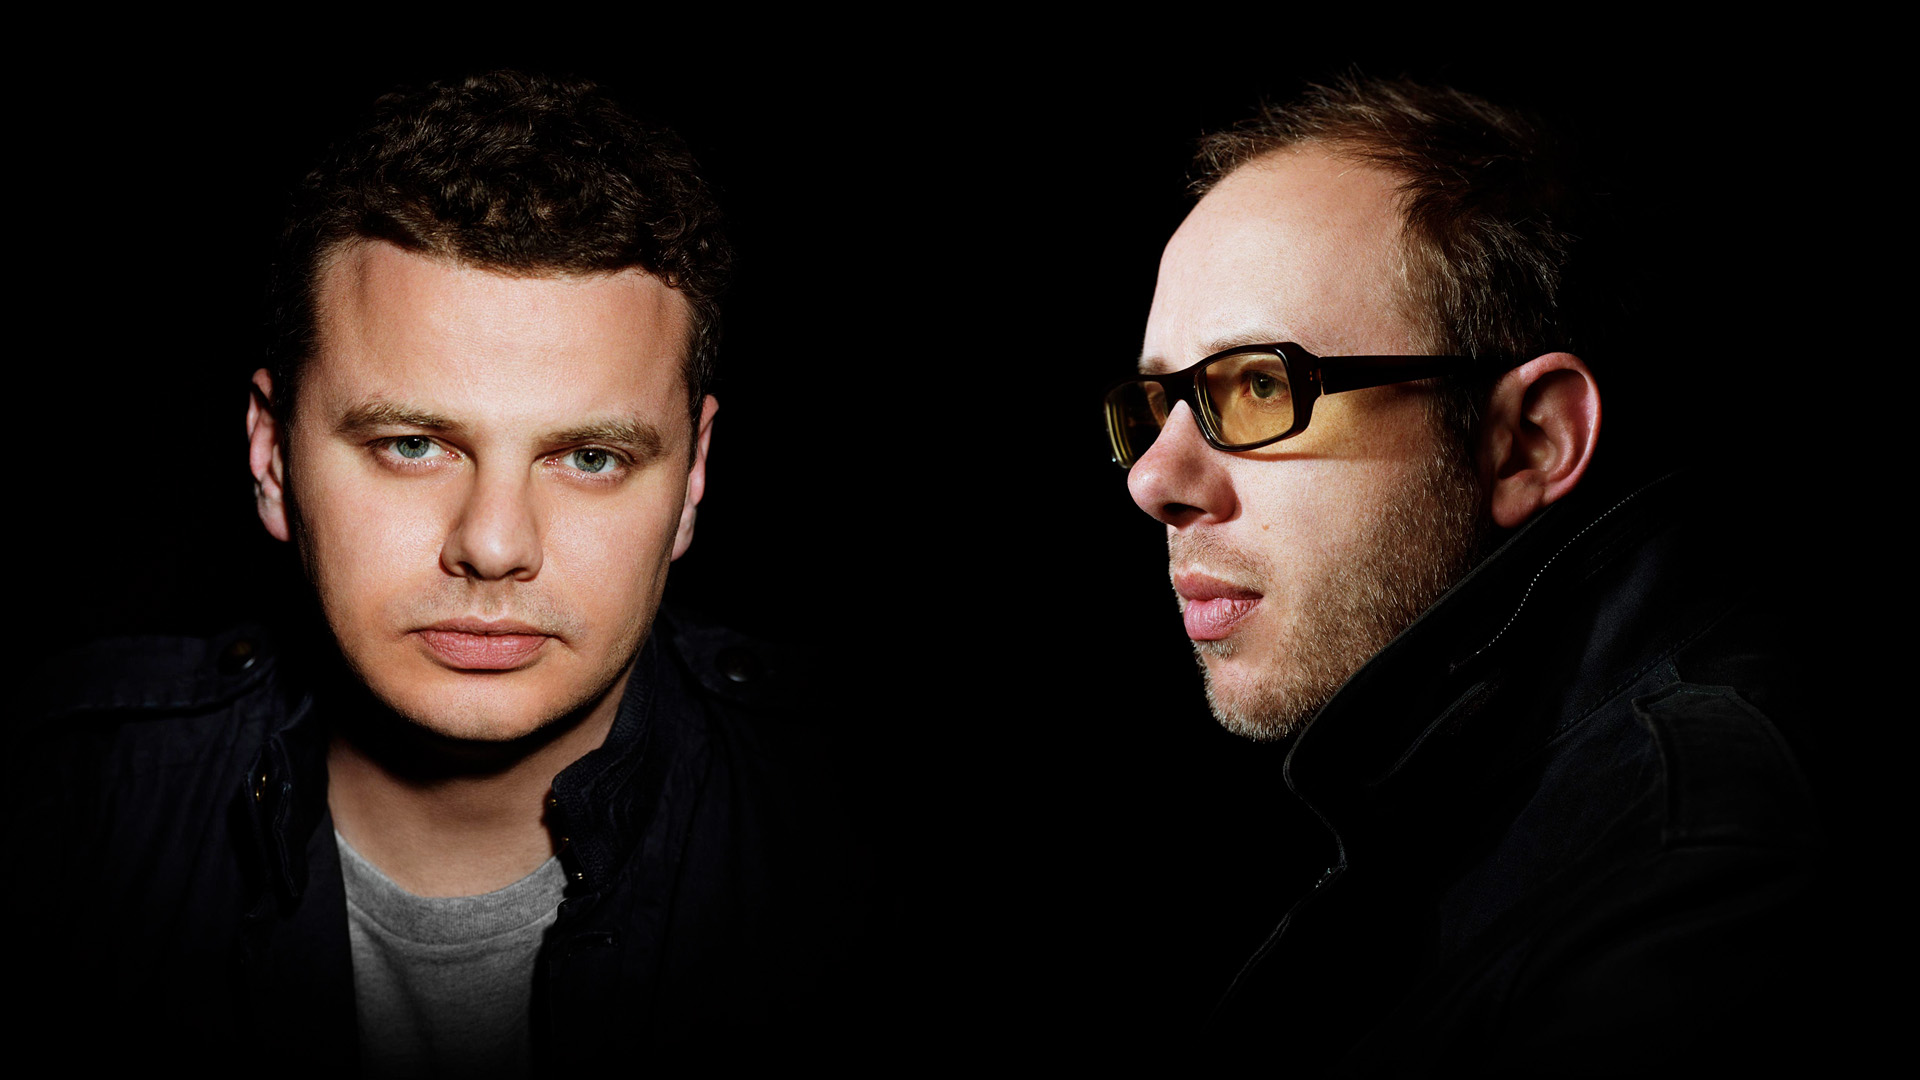 The Chemical Brothers vai lançar novo álbum em 2015 adam smith, barcelona, Chemical Brothers, don't think, further, sonar, tom rowlands